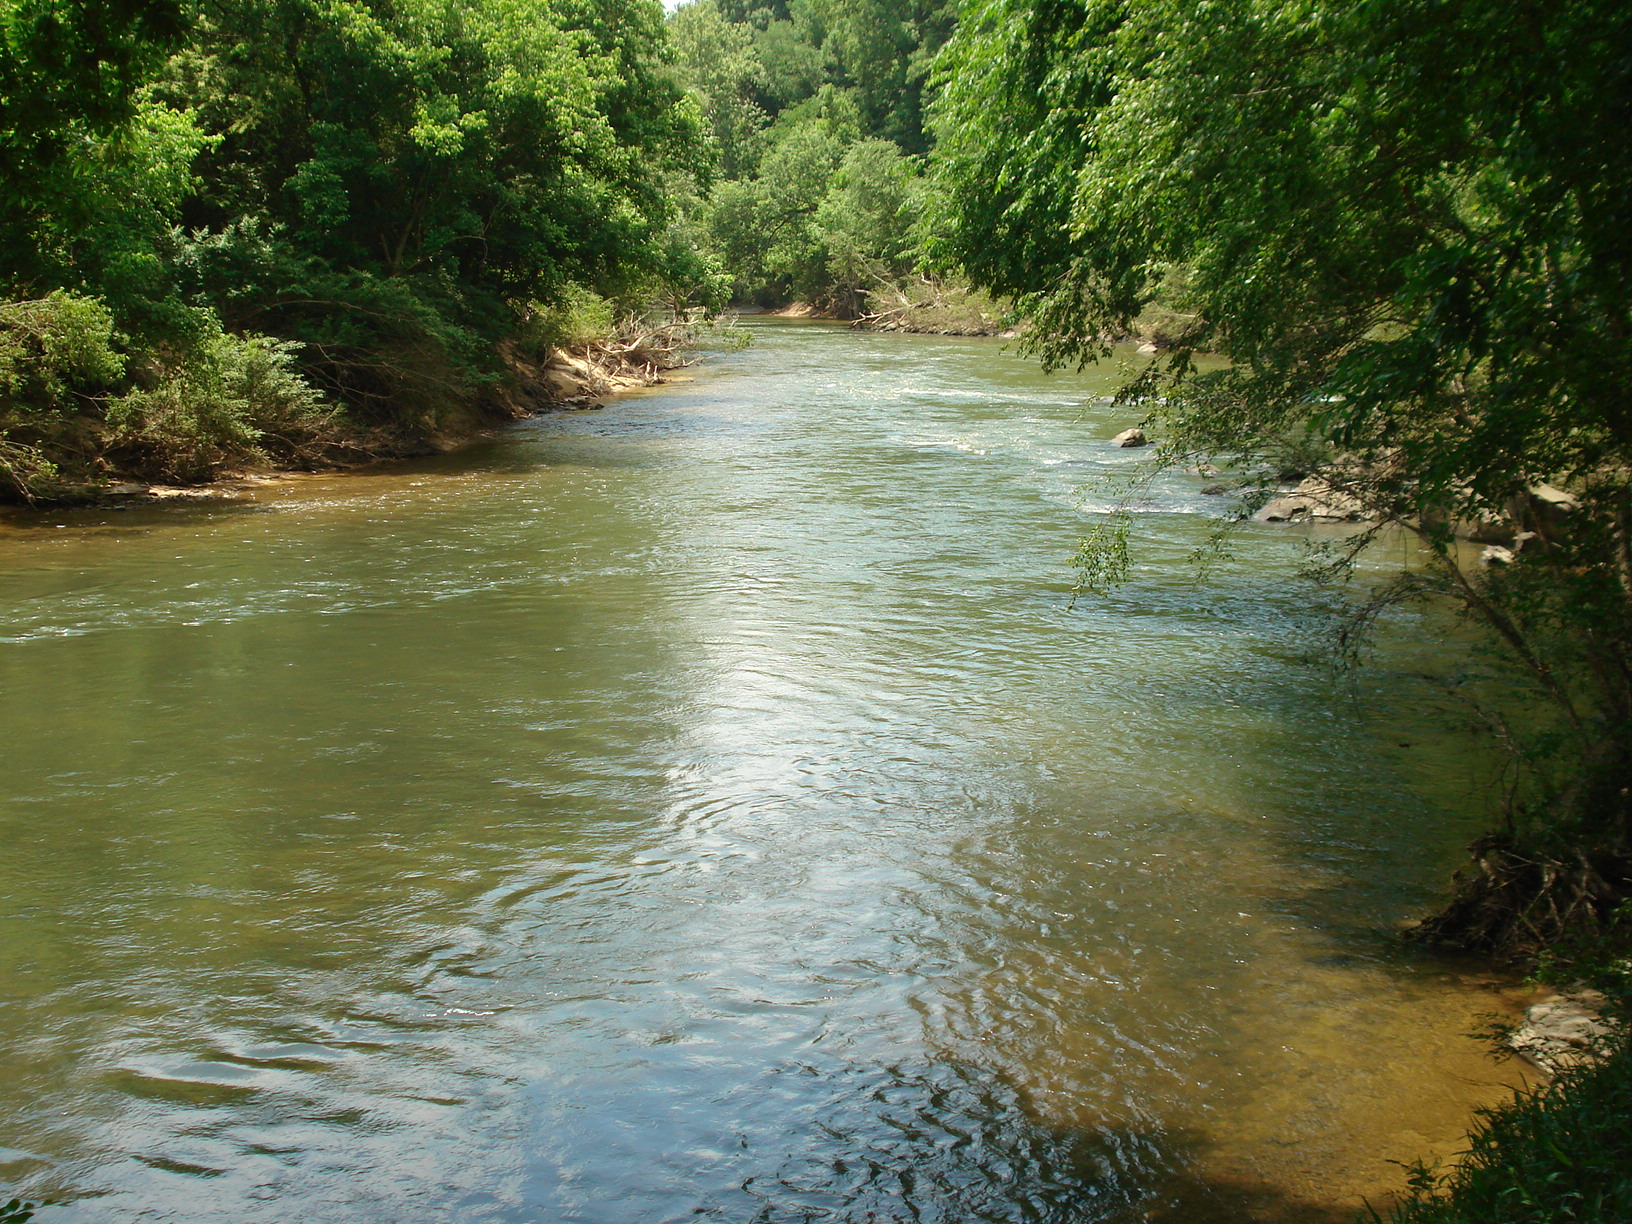 property fronts on both sides of Locust Fork River for 1/2 mile